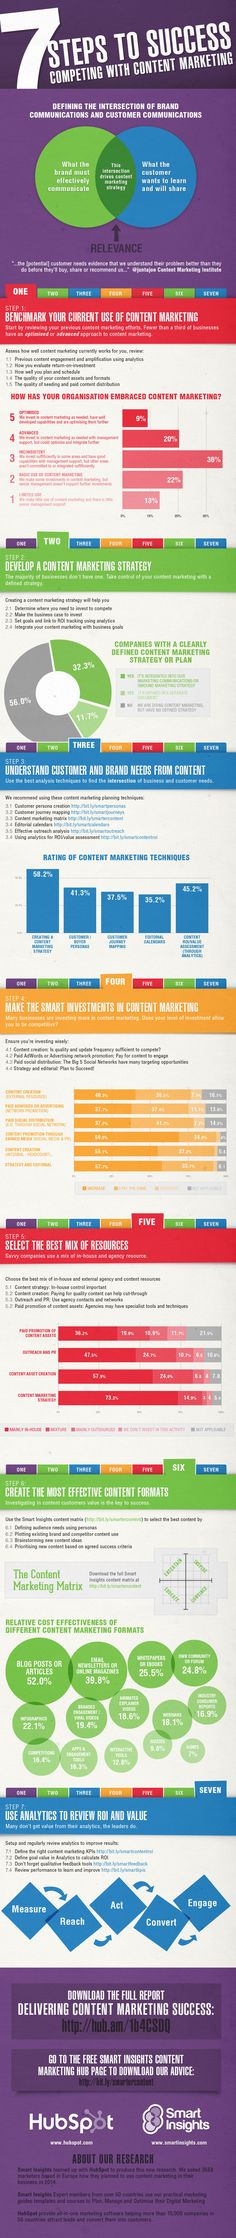 7 Steps to Content Marketing Success: Competing with #ContentMarketing - #infographic